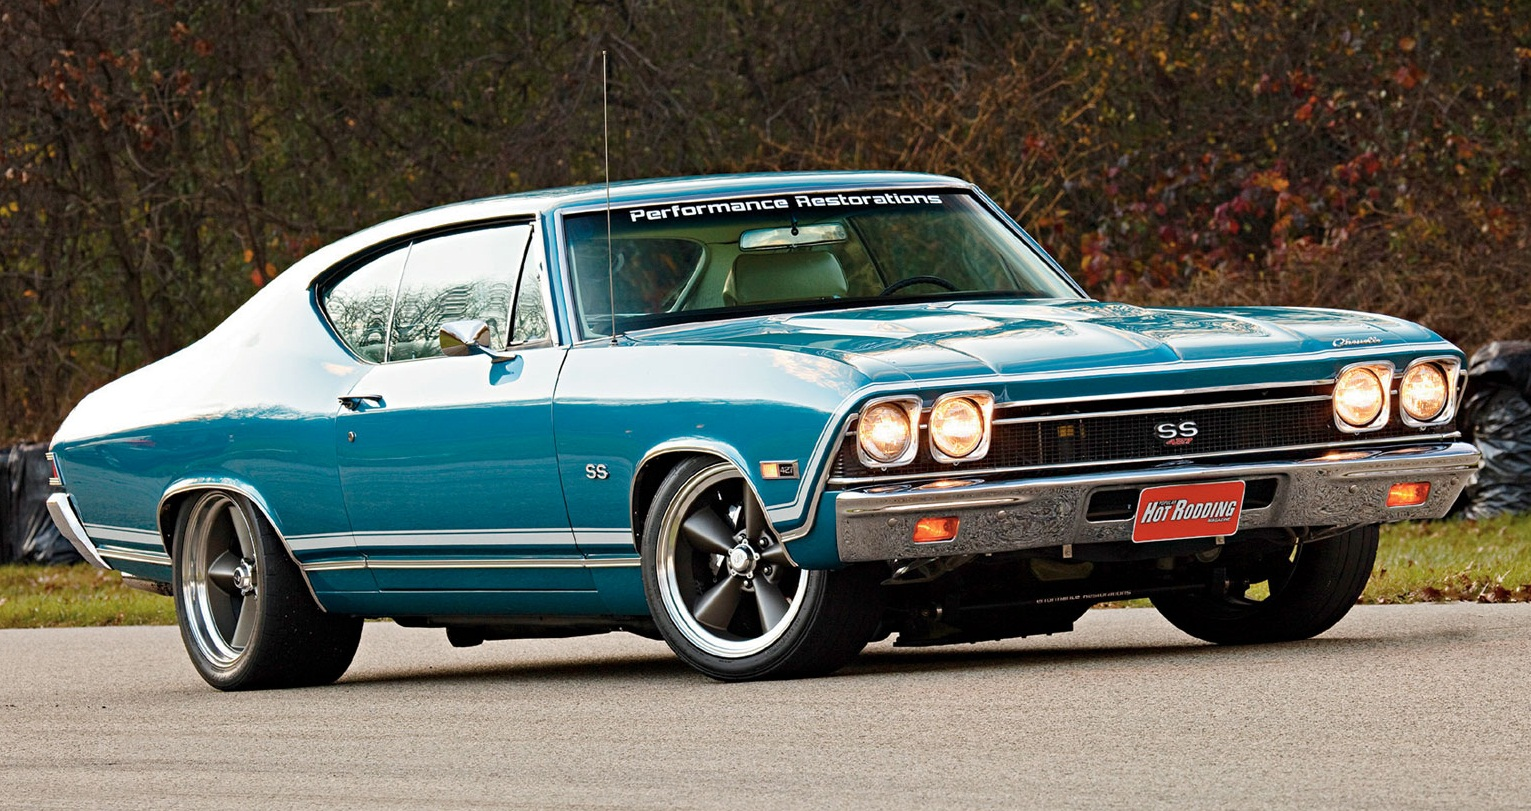 Chevrolet Camaro Sport Ss Hd Wallpapers Hd Car Wallpapers Displaying 20> Images For - 1960s Chevy Chevelle...